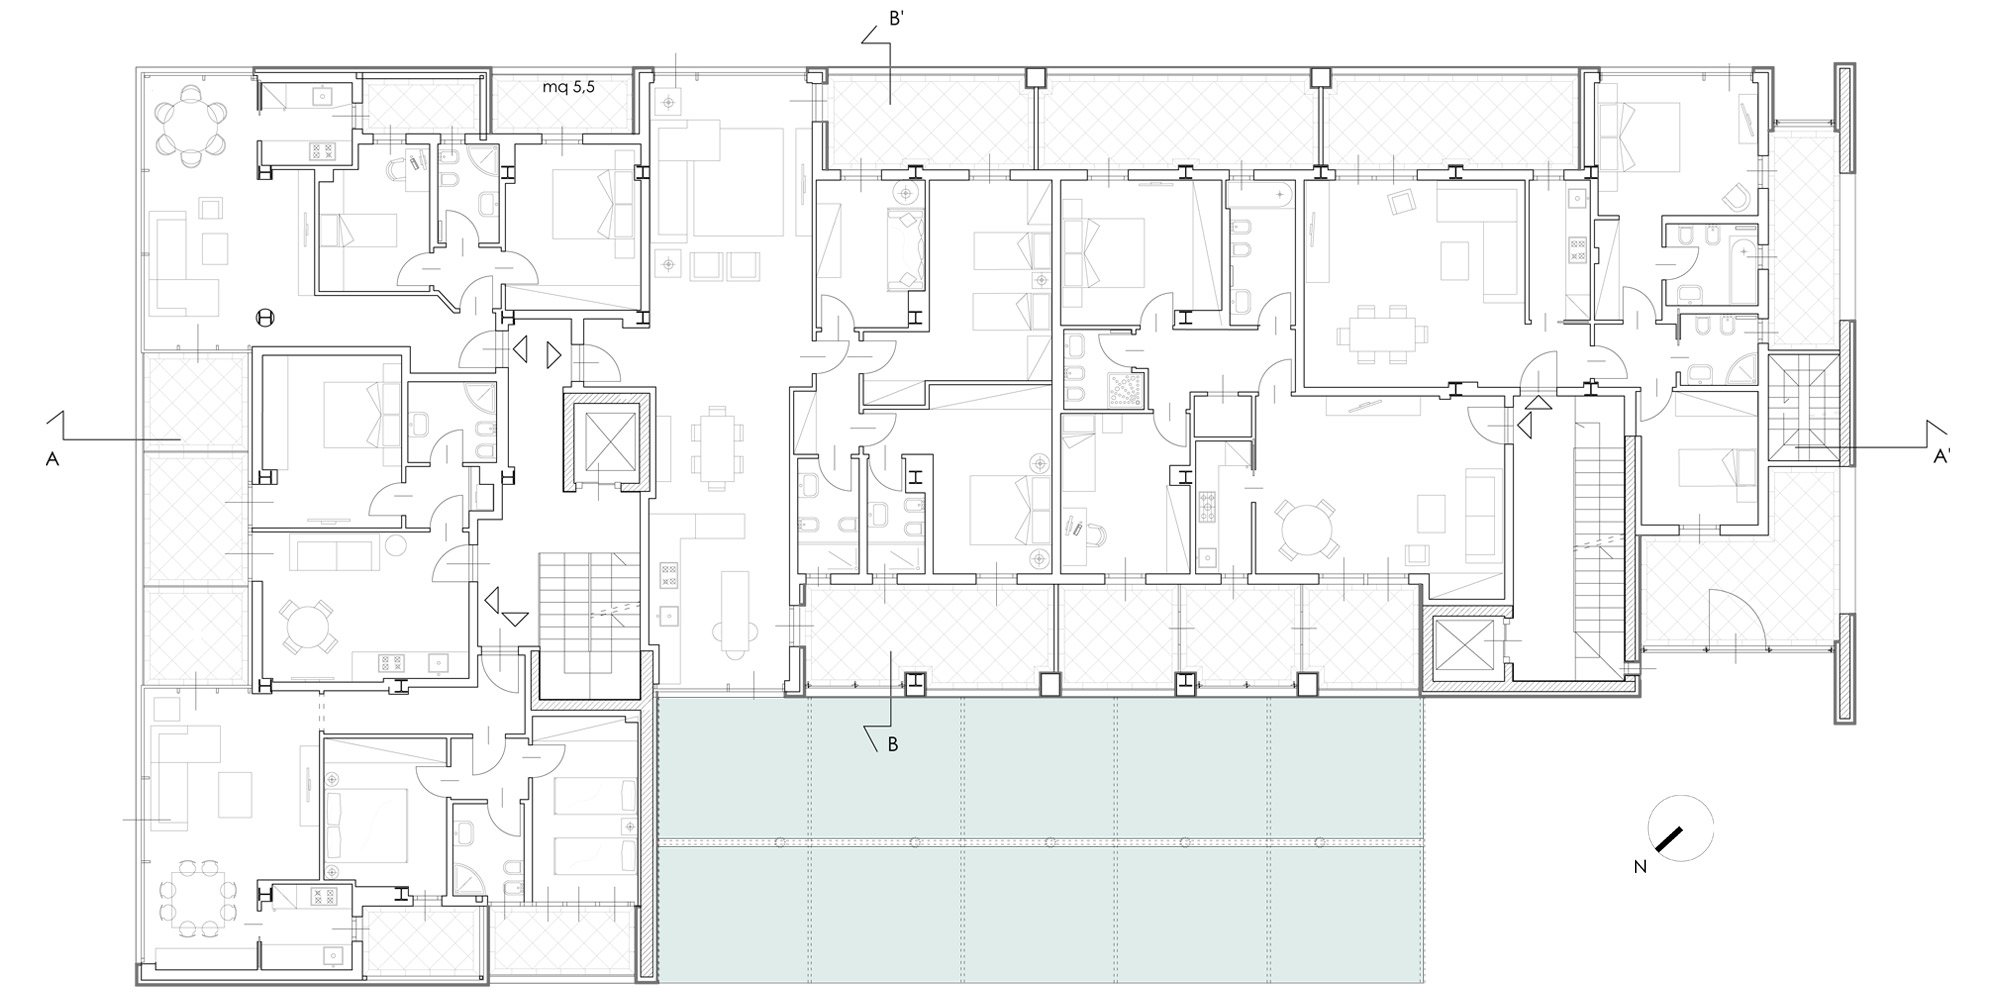 Second floor plan © Cantini&Partners